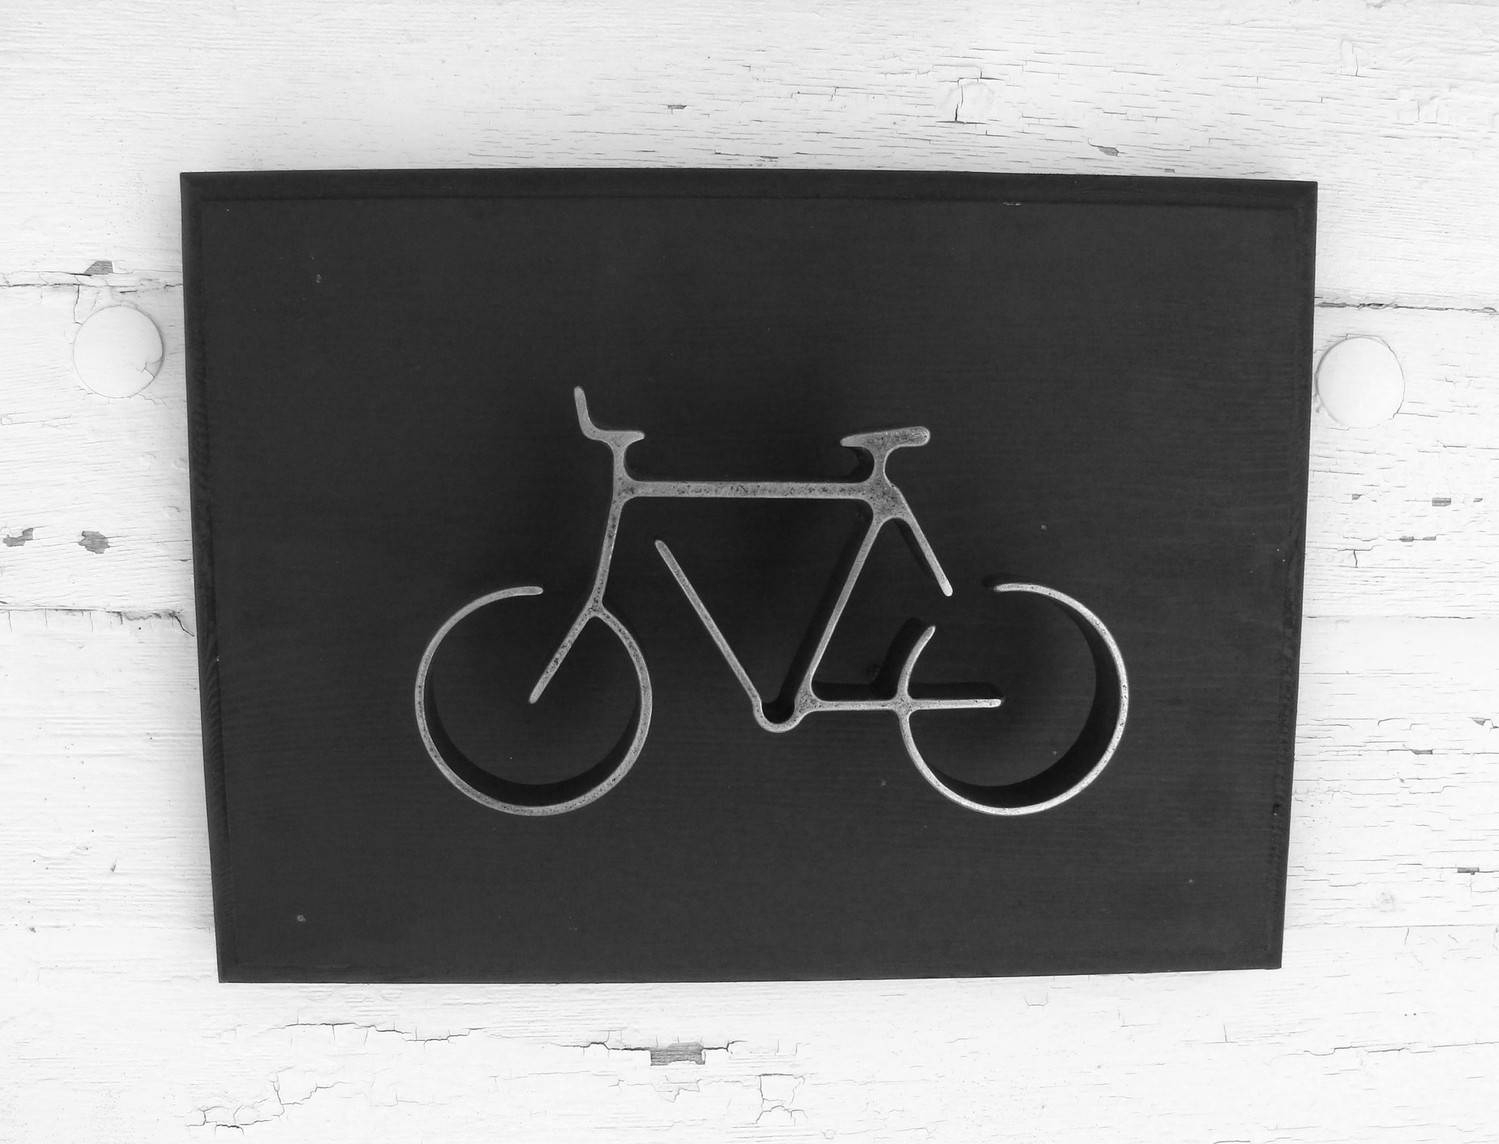 Metal Bike Wall Art Sign Bicycle Wall Hanging Home Or Office Intended For 2017 Cycling Wall Art (View 7 of 25)